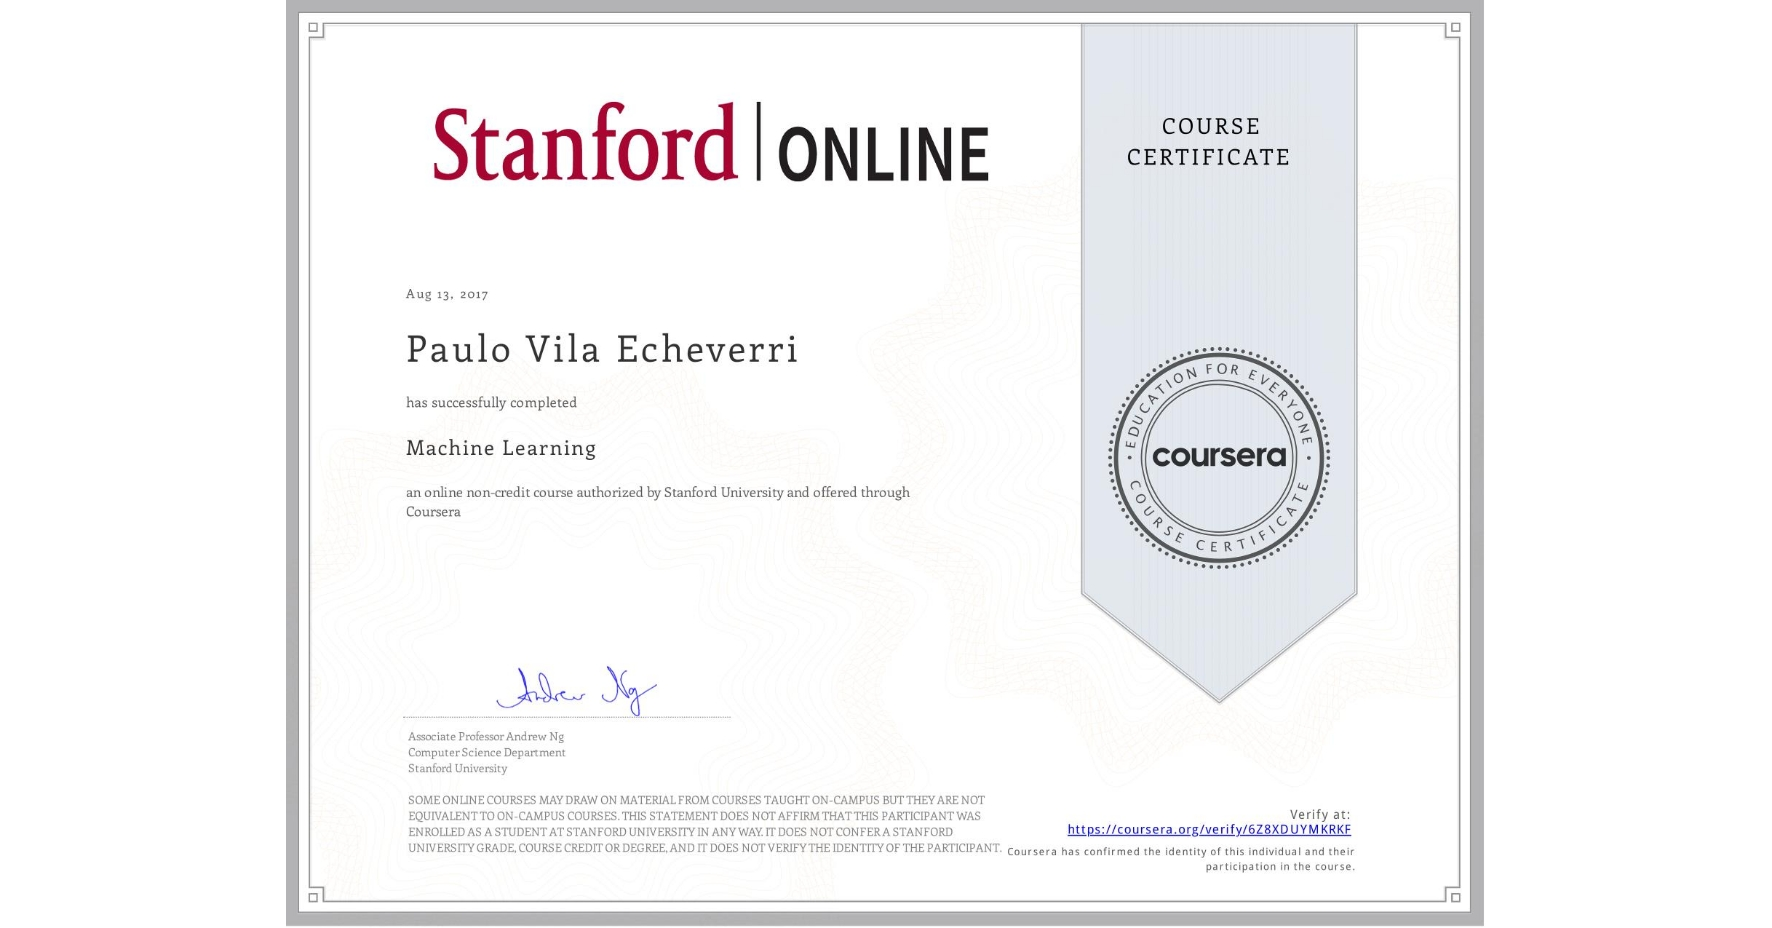 View certificate for Paulo Vila, Machine Learning, an online non-credit course authorized by Stanford University and offered through Coursera